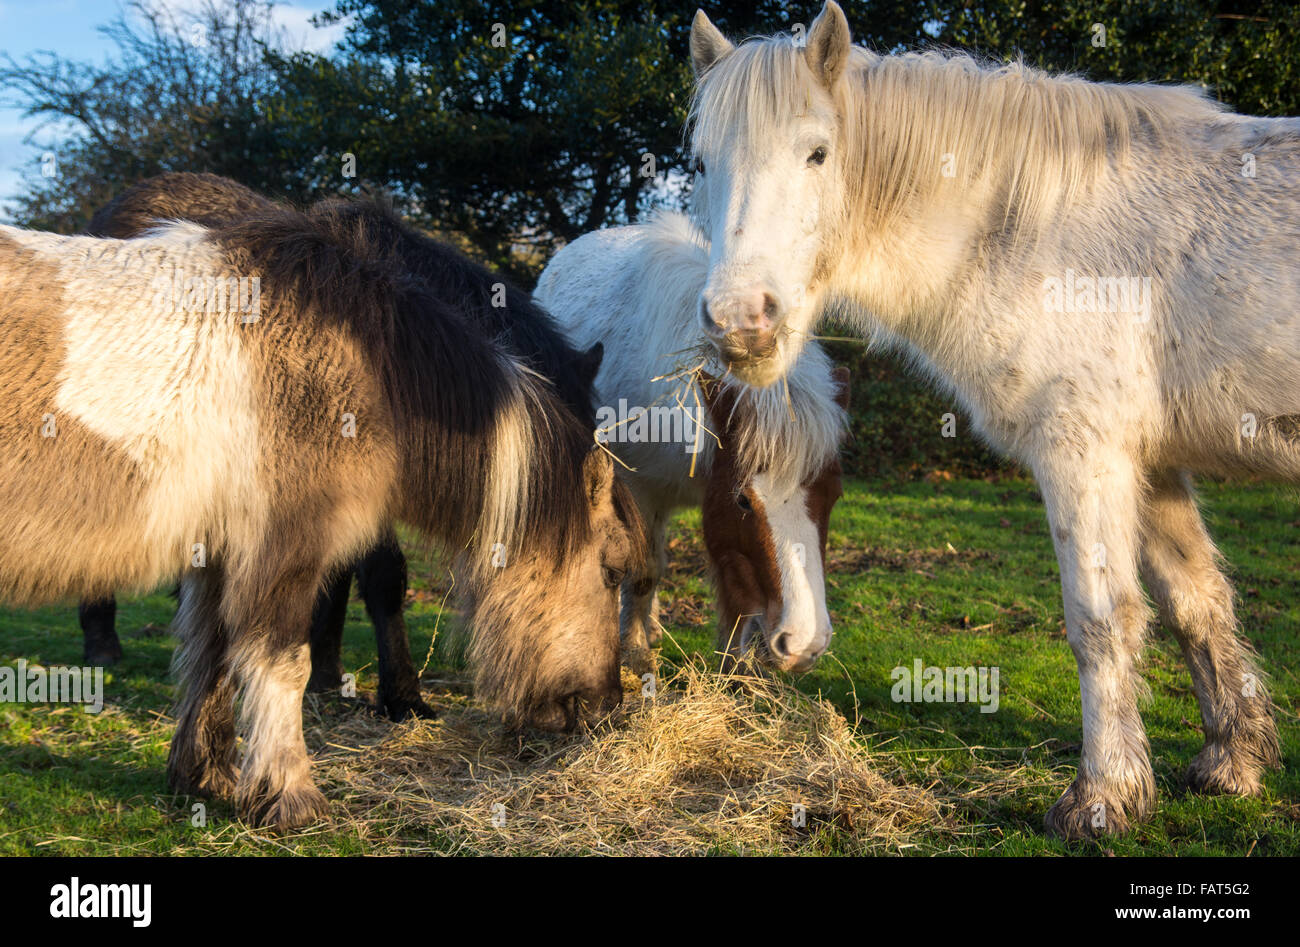 New Forest ponies tuck into their winter feed in the National Park, Hampshire, UK. - Stock Image